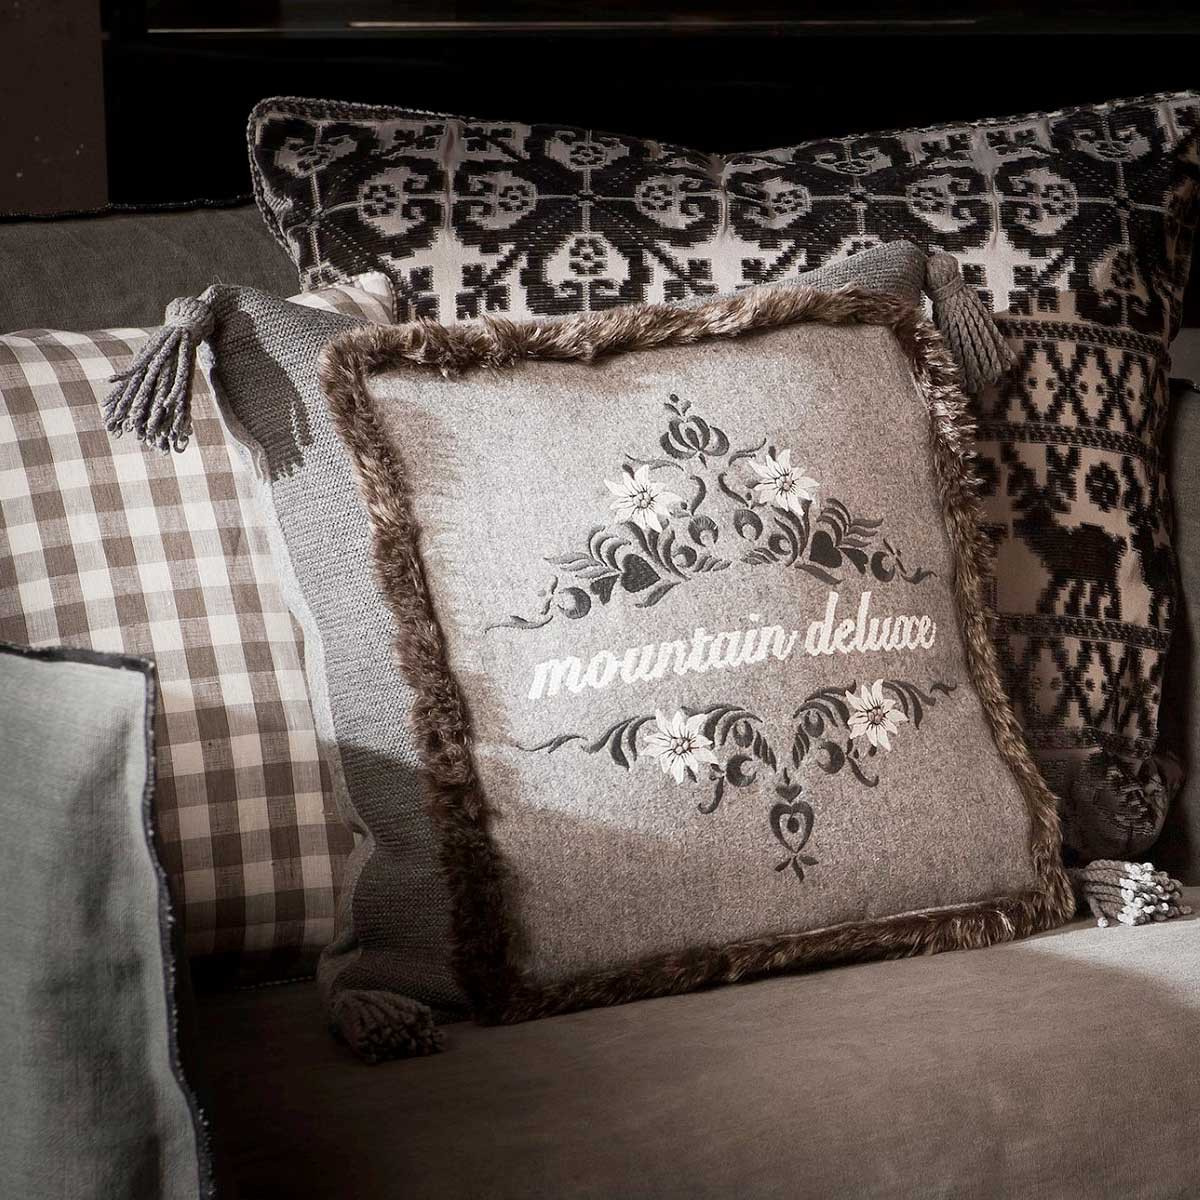 kissen mit schriftzug kissen mit schriftzug und hirsch accessoires geschenke kissen mit bild. Black Bedroom Furniture Sets. Home Design Ideas